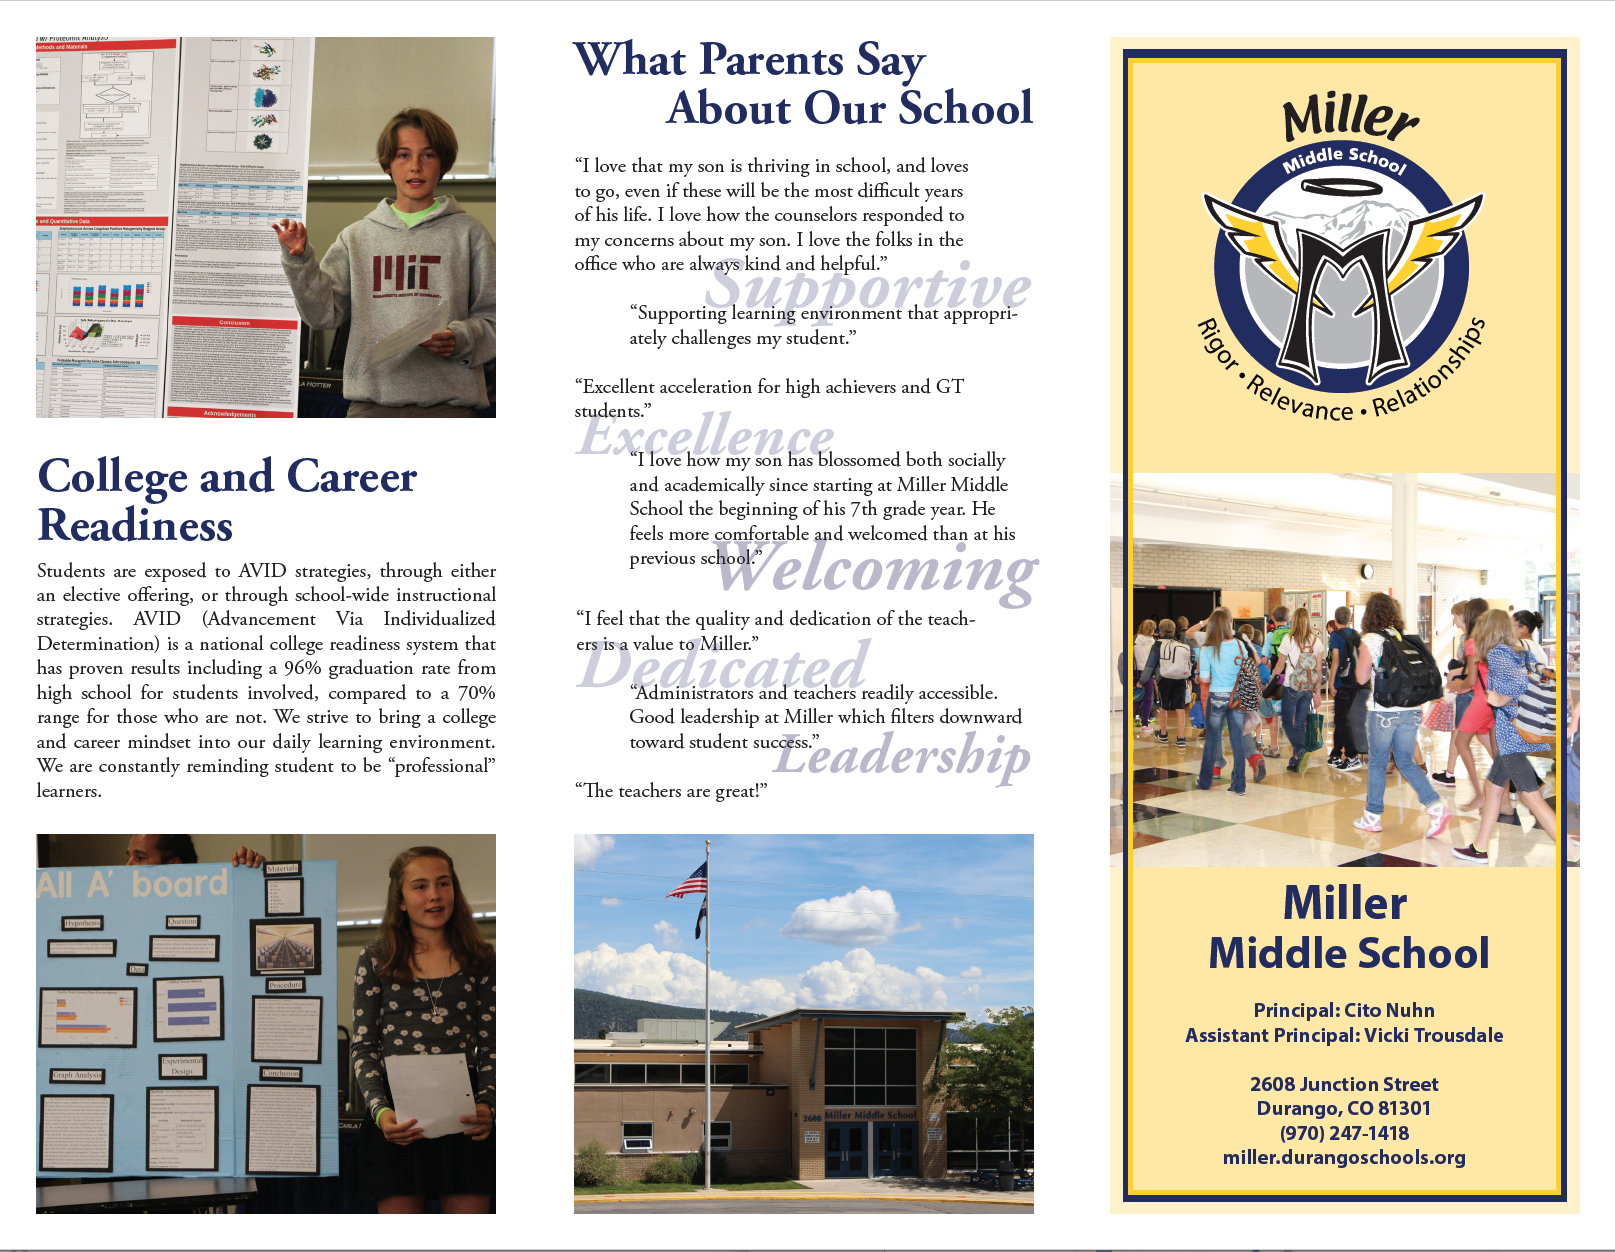 Screenshot of the outside of the Miller Middle School brochure.